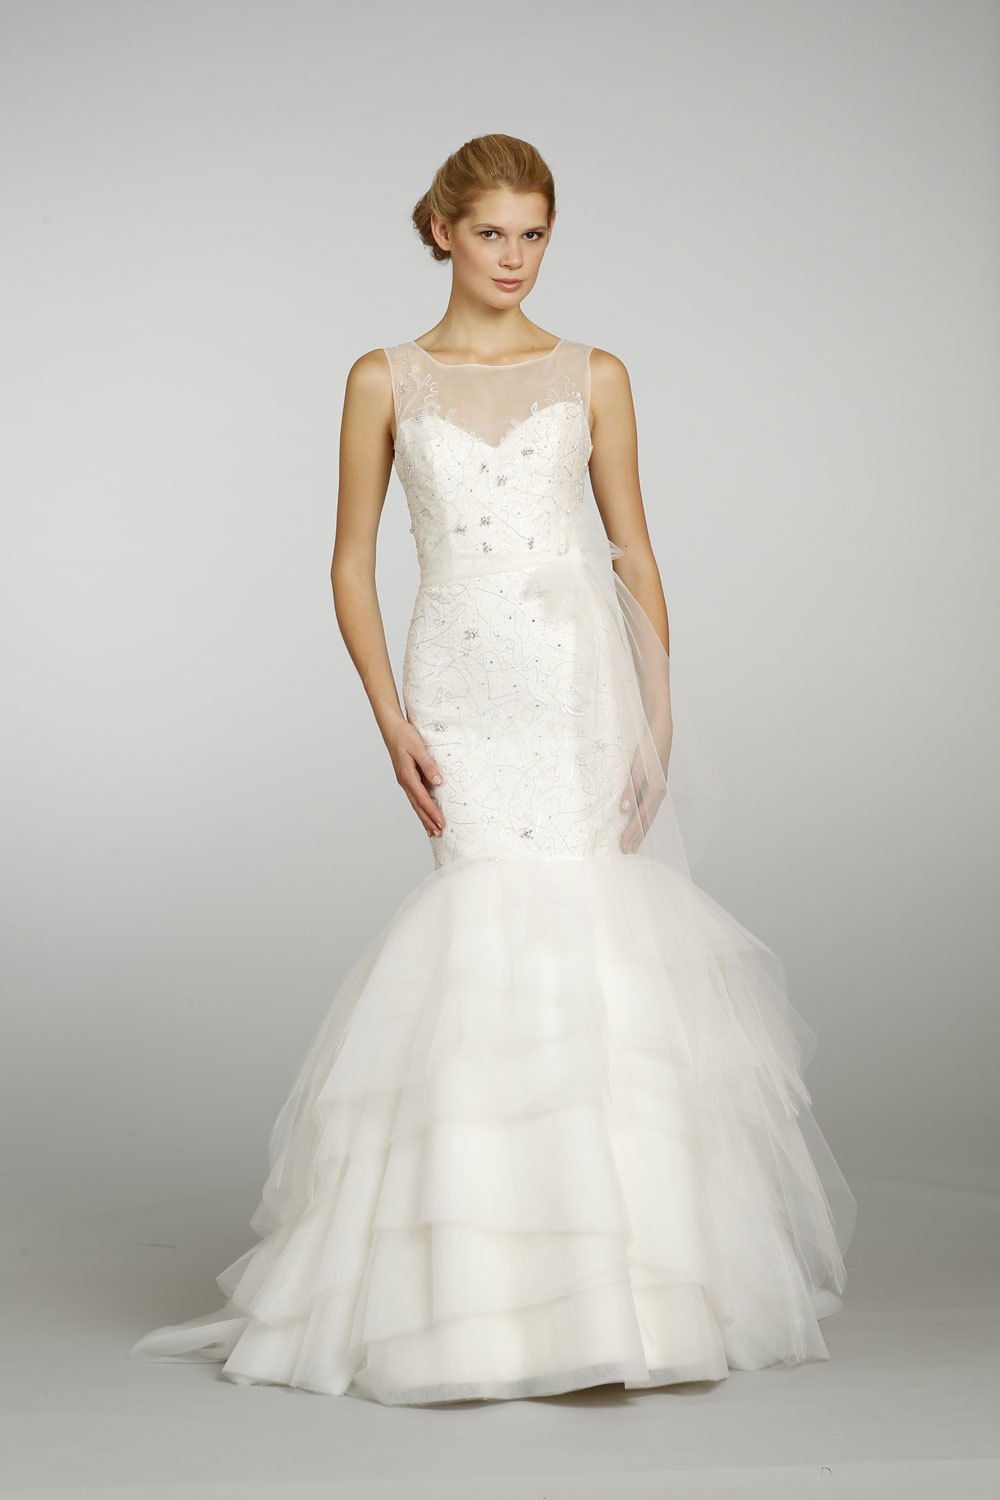 Spring-2013-wedding-dress-alvina-valenta-bridal-9313.full